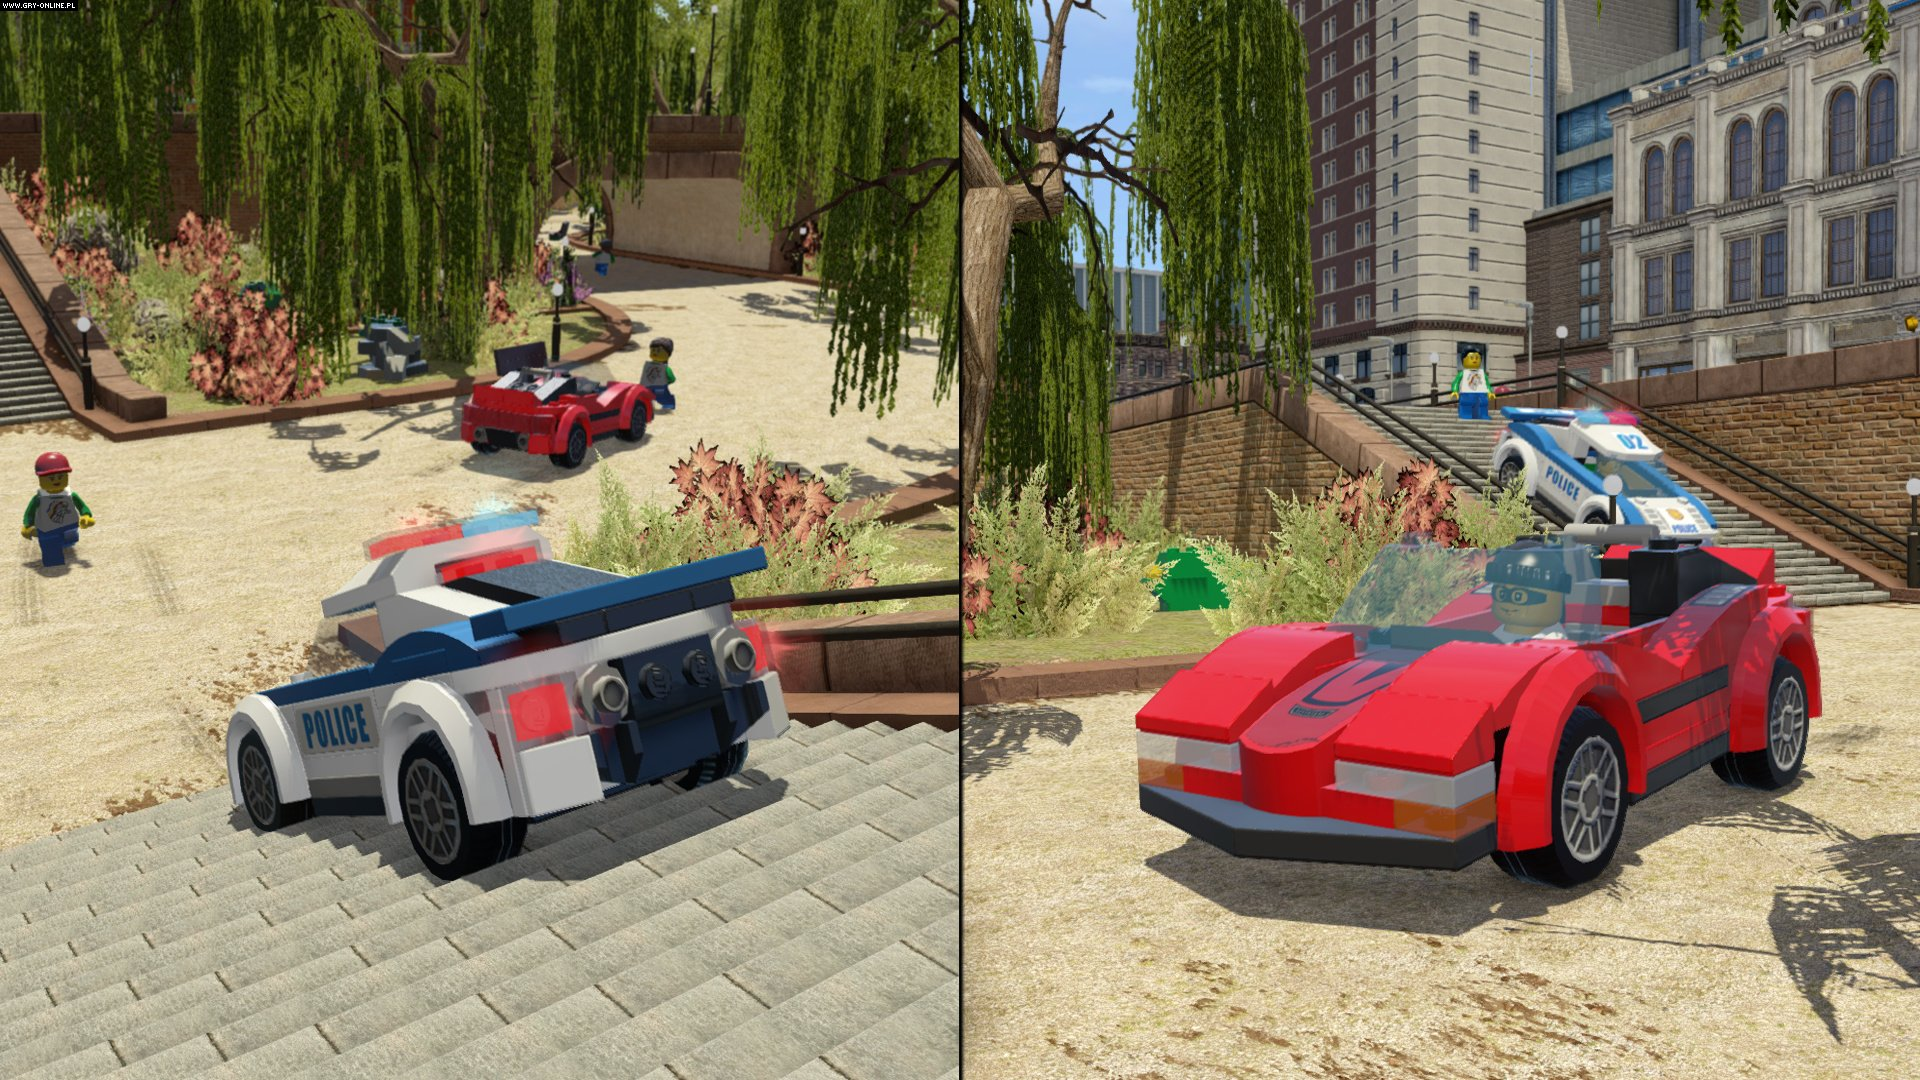 LEGO City: Undercover PC, PS4, XONE, Switch Games Image 4/89, Traveller's Tales / TT Games, Warner Bros. Interactive Entertainment